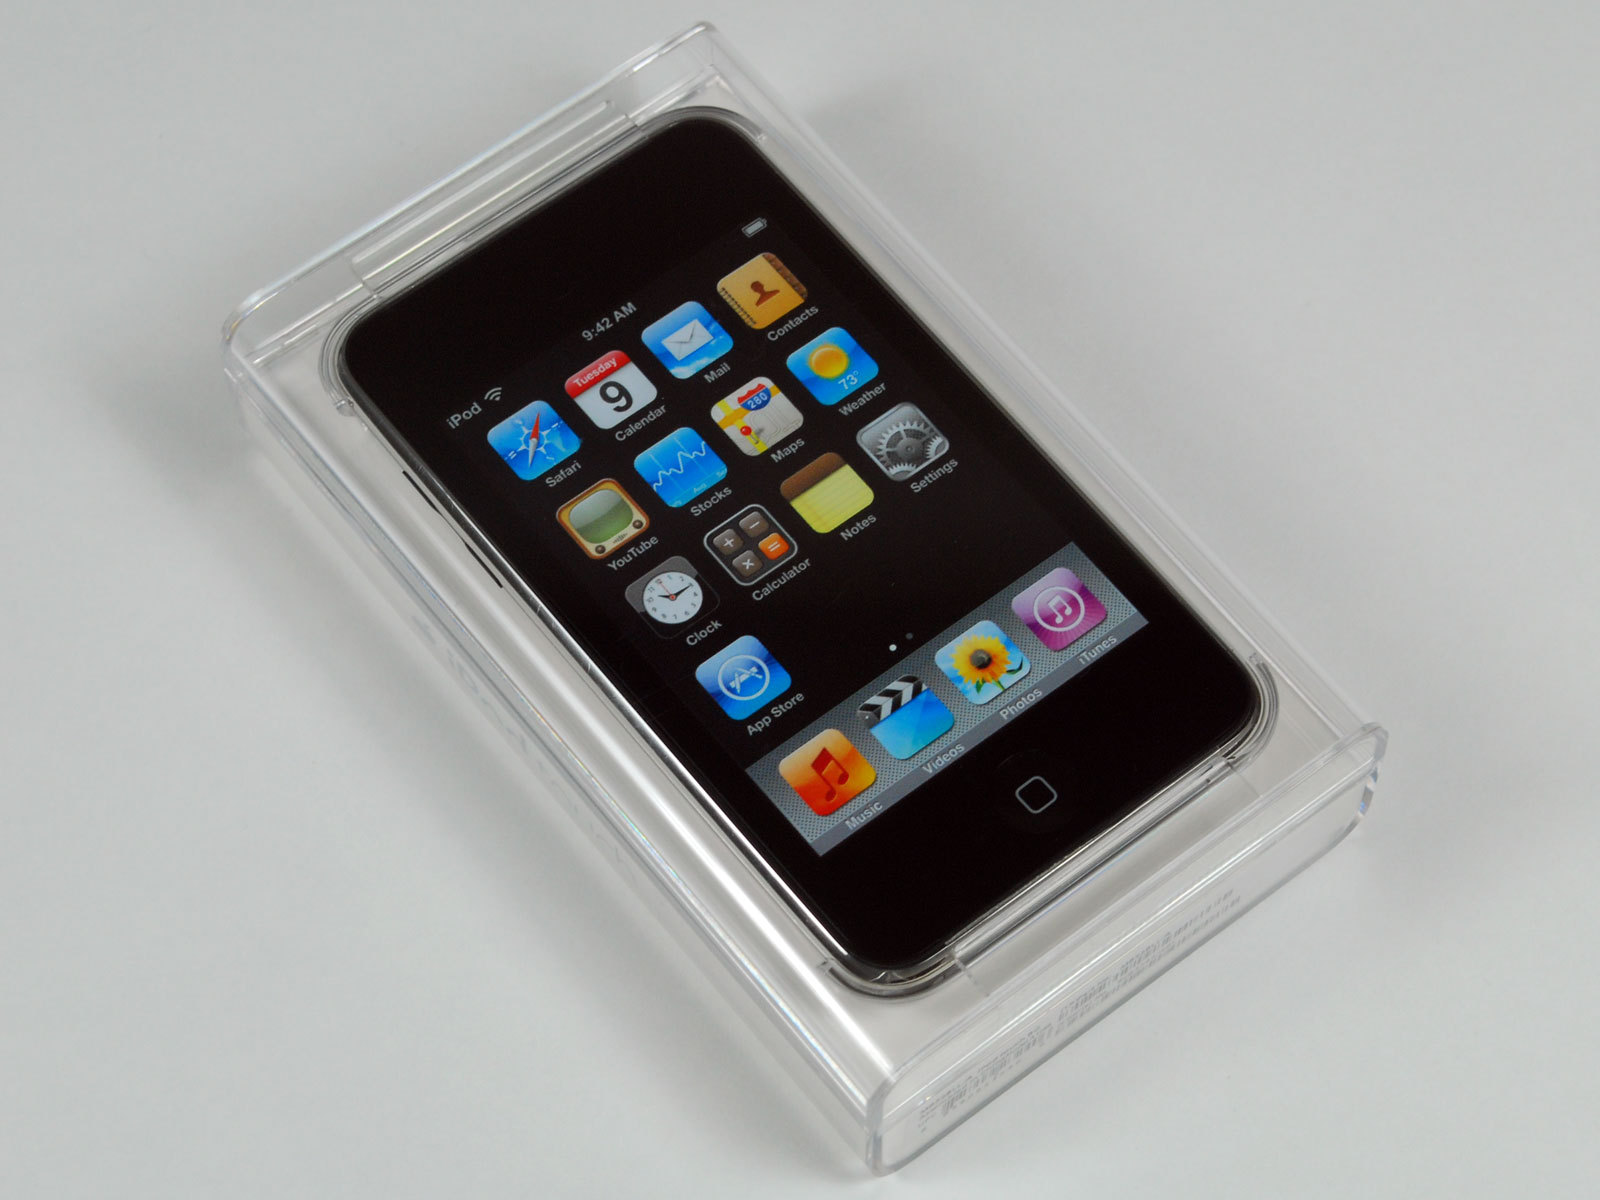 Ipod touch 2nd generation 3.0 beta firmware 4.3